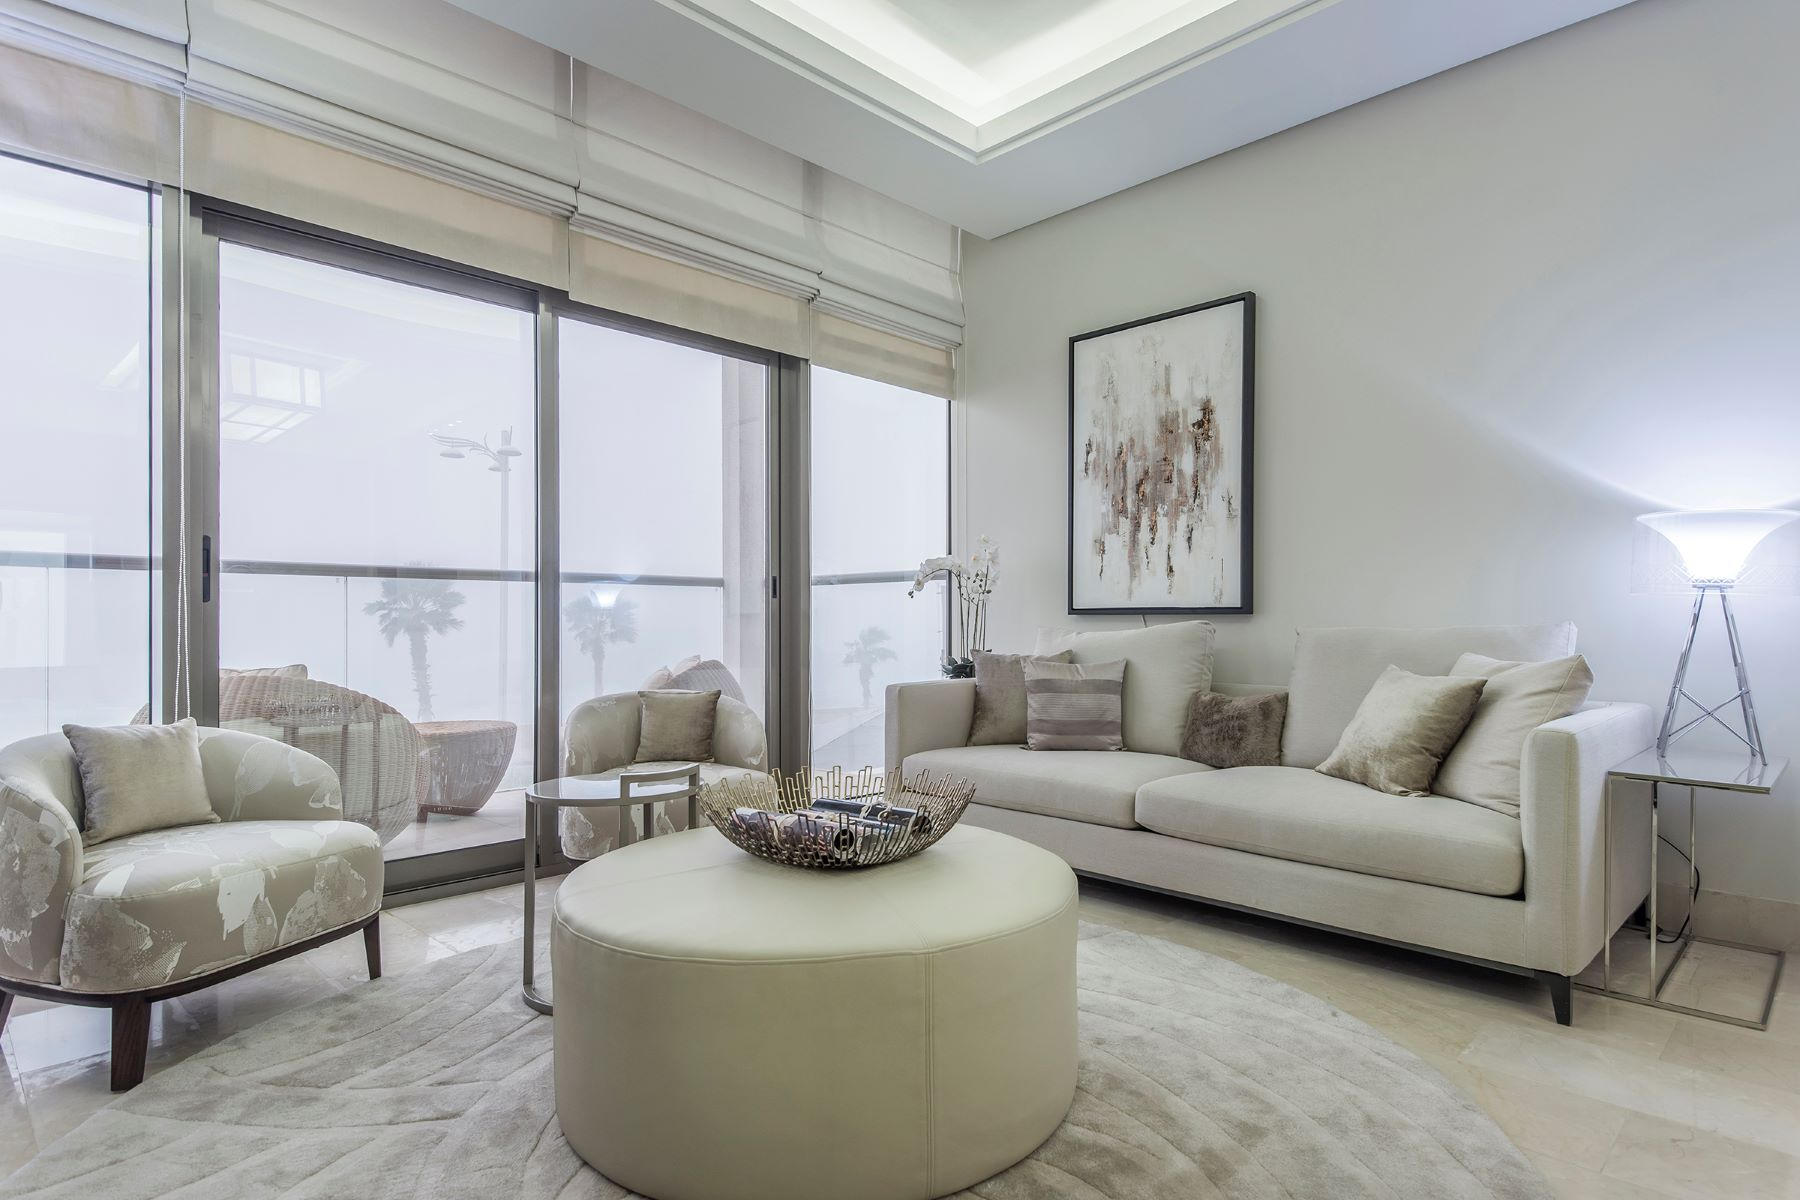 Townhouse for Sale at Waterfront Townhouse on The Palm Jumeirah Palm Jumeirah The 8 Dubai, Dubai 00000 United Arab Emirates